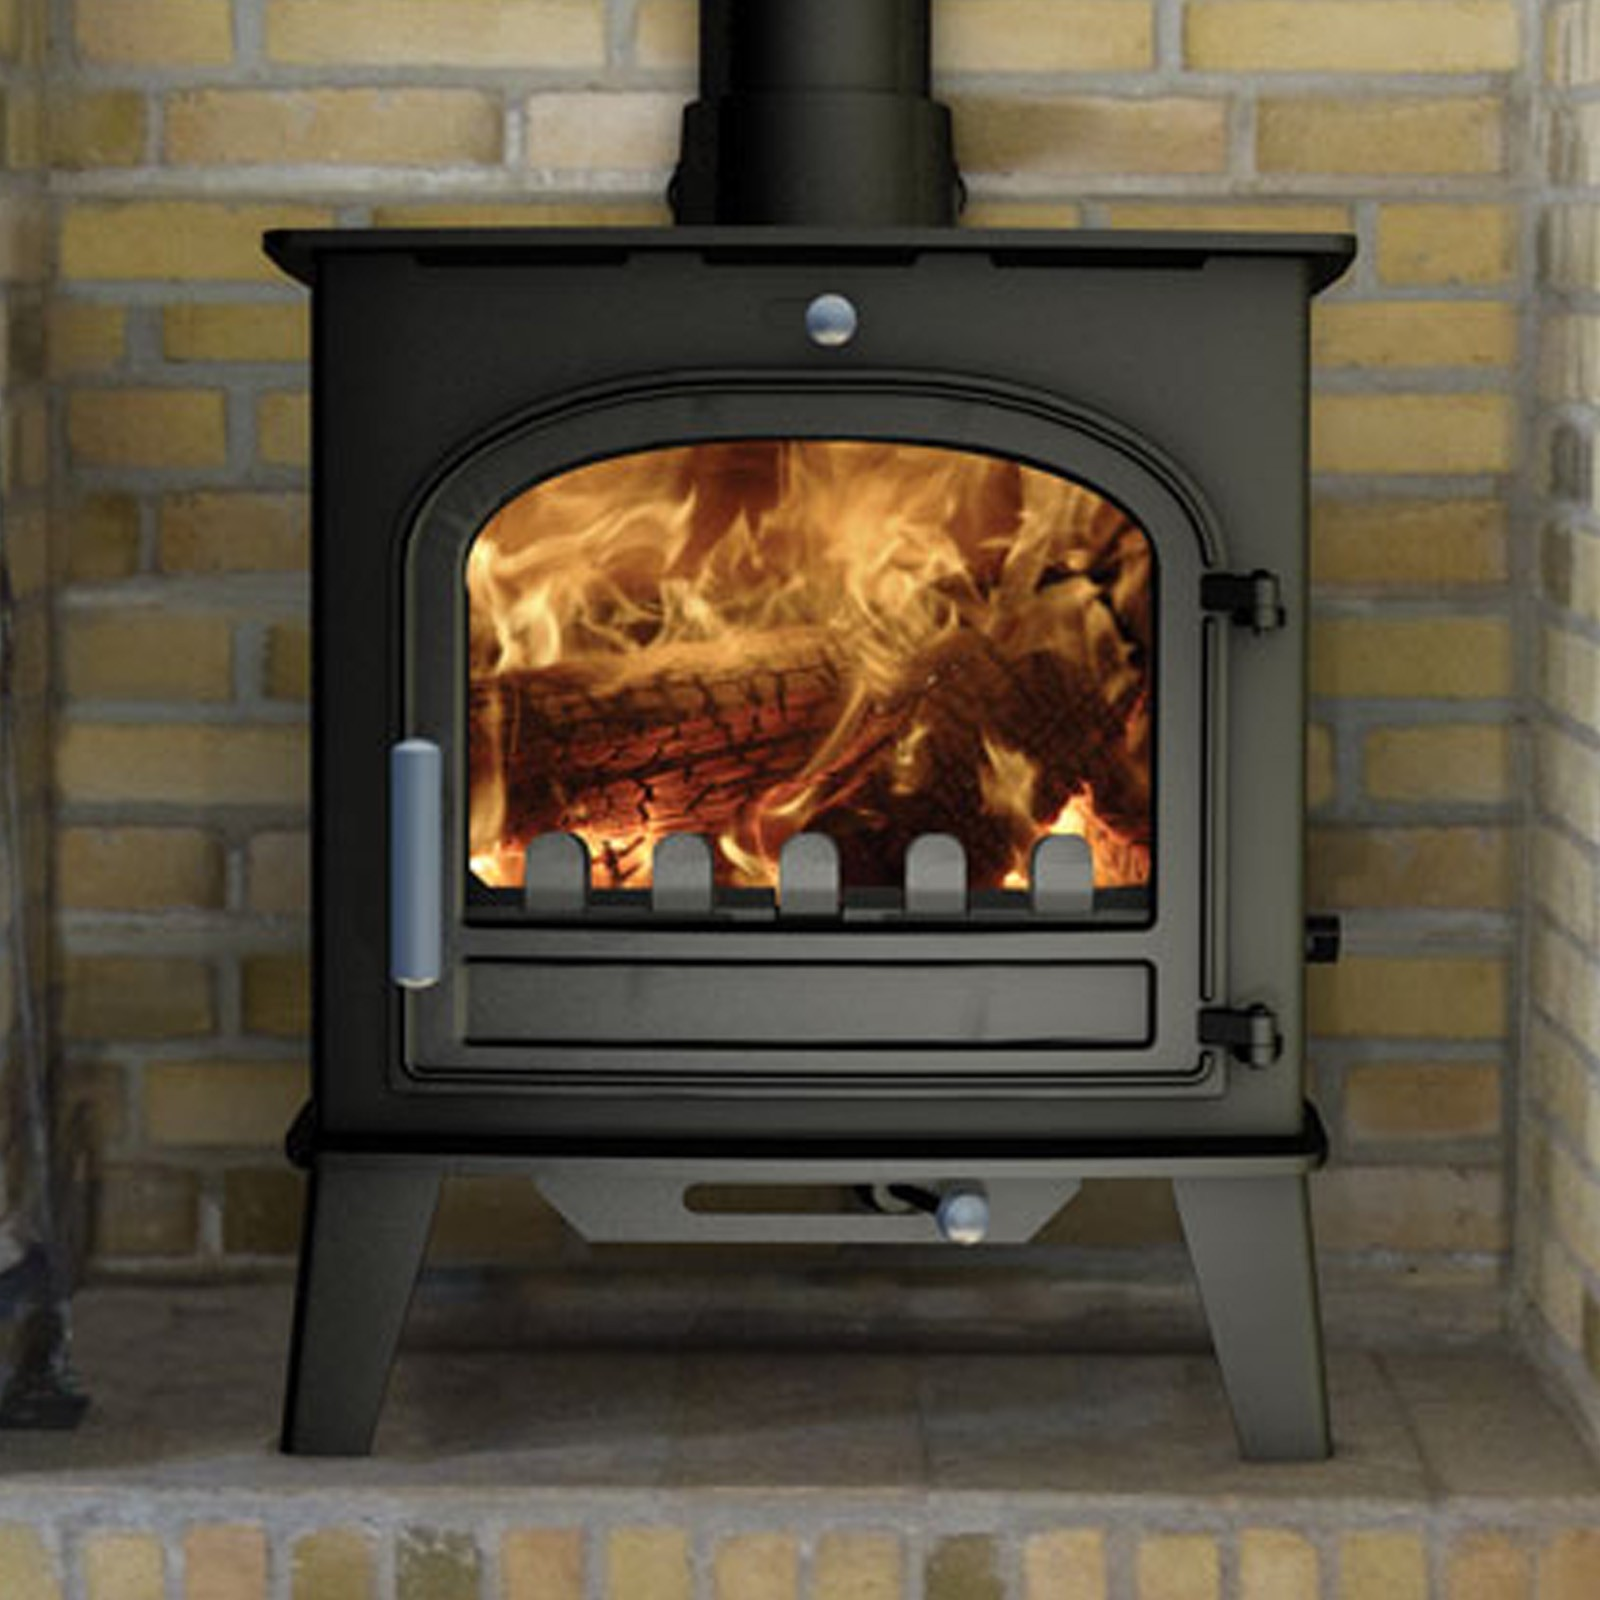 Defra Approved Cleanburn Norreskoven Mk2 Traditional Multifuel Woodburning Stove Fast Free